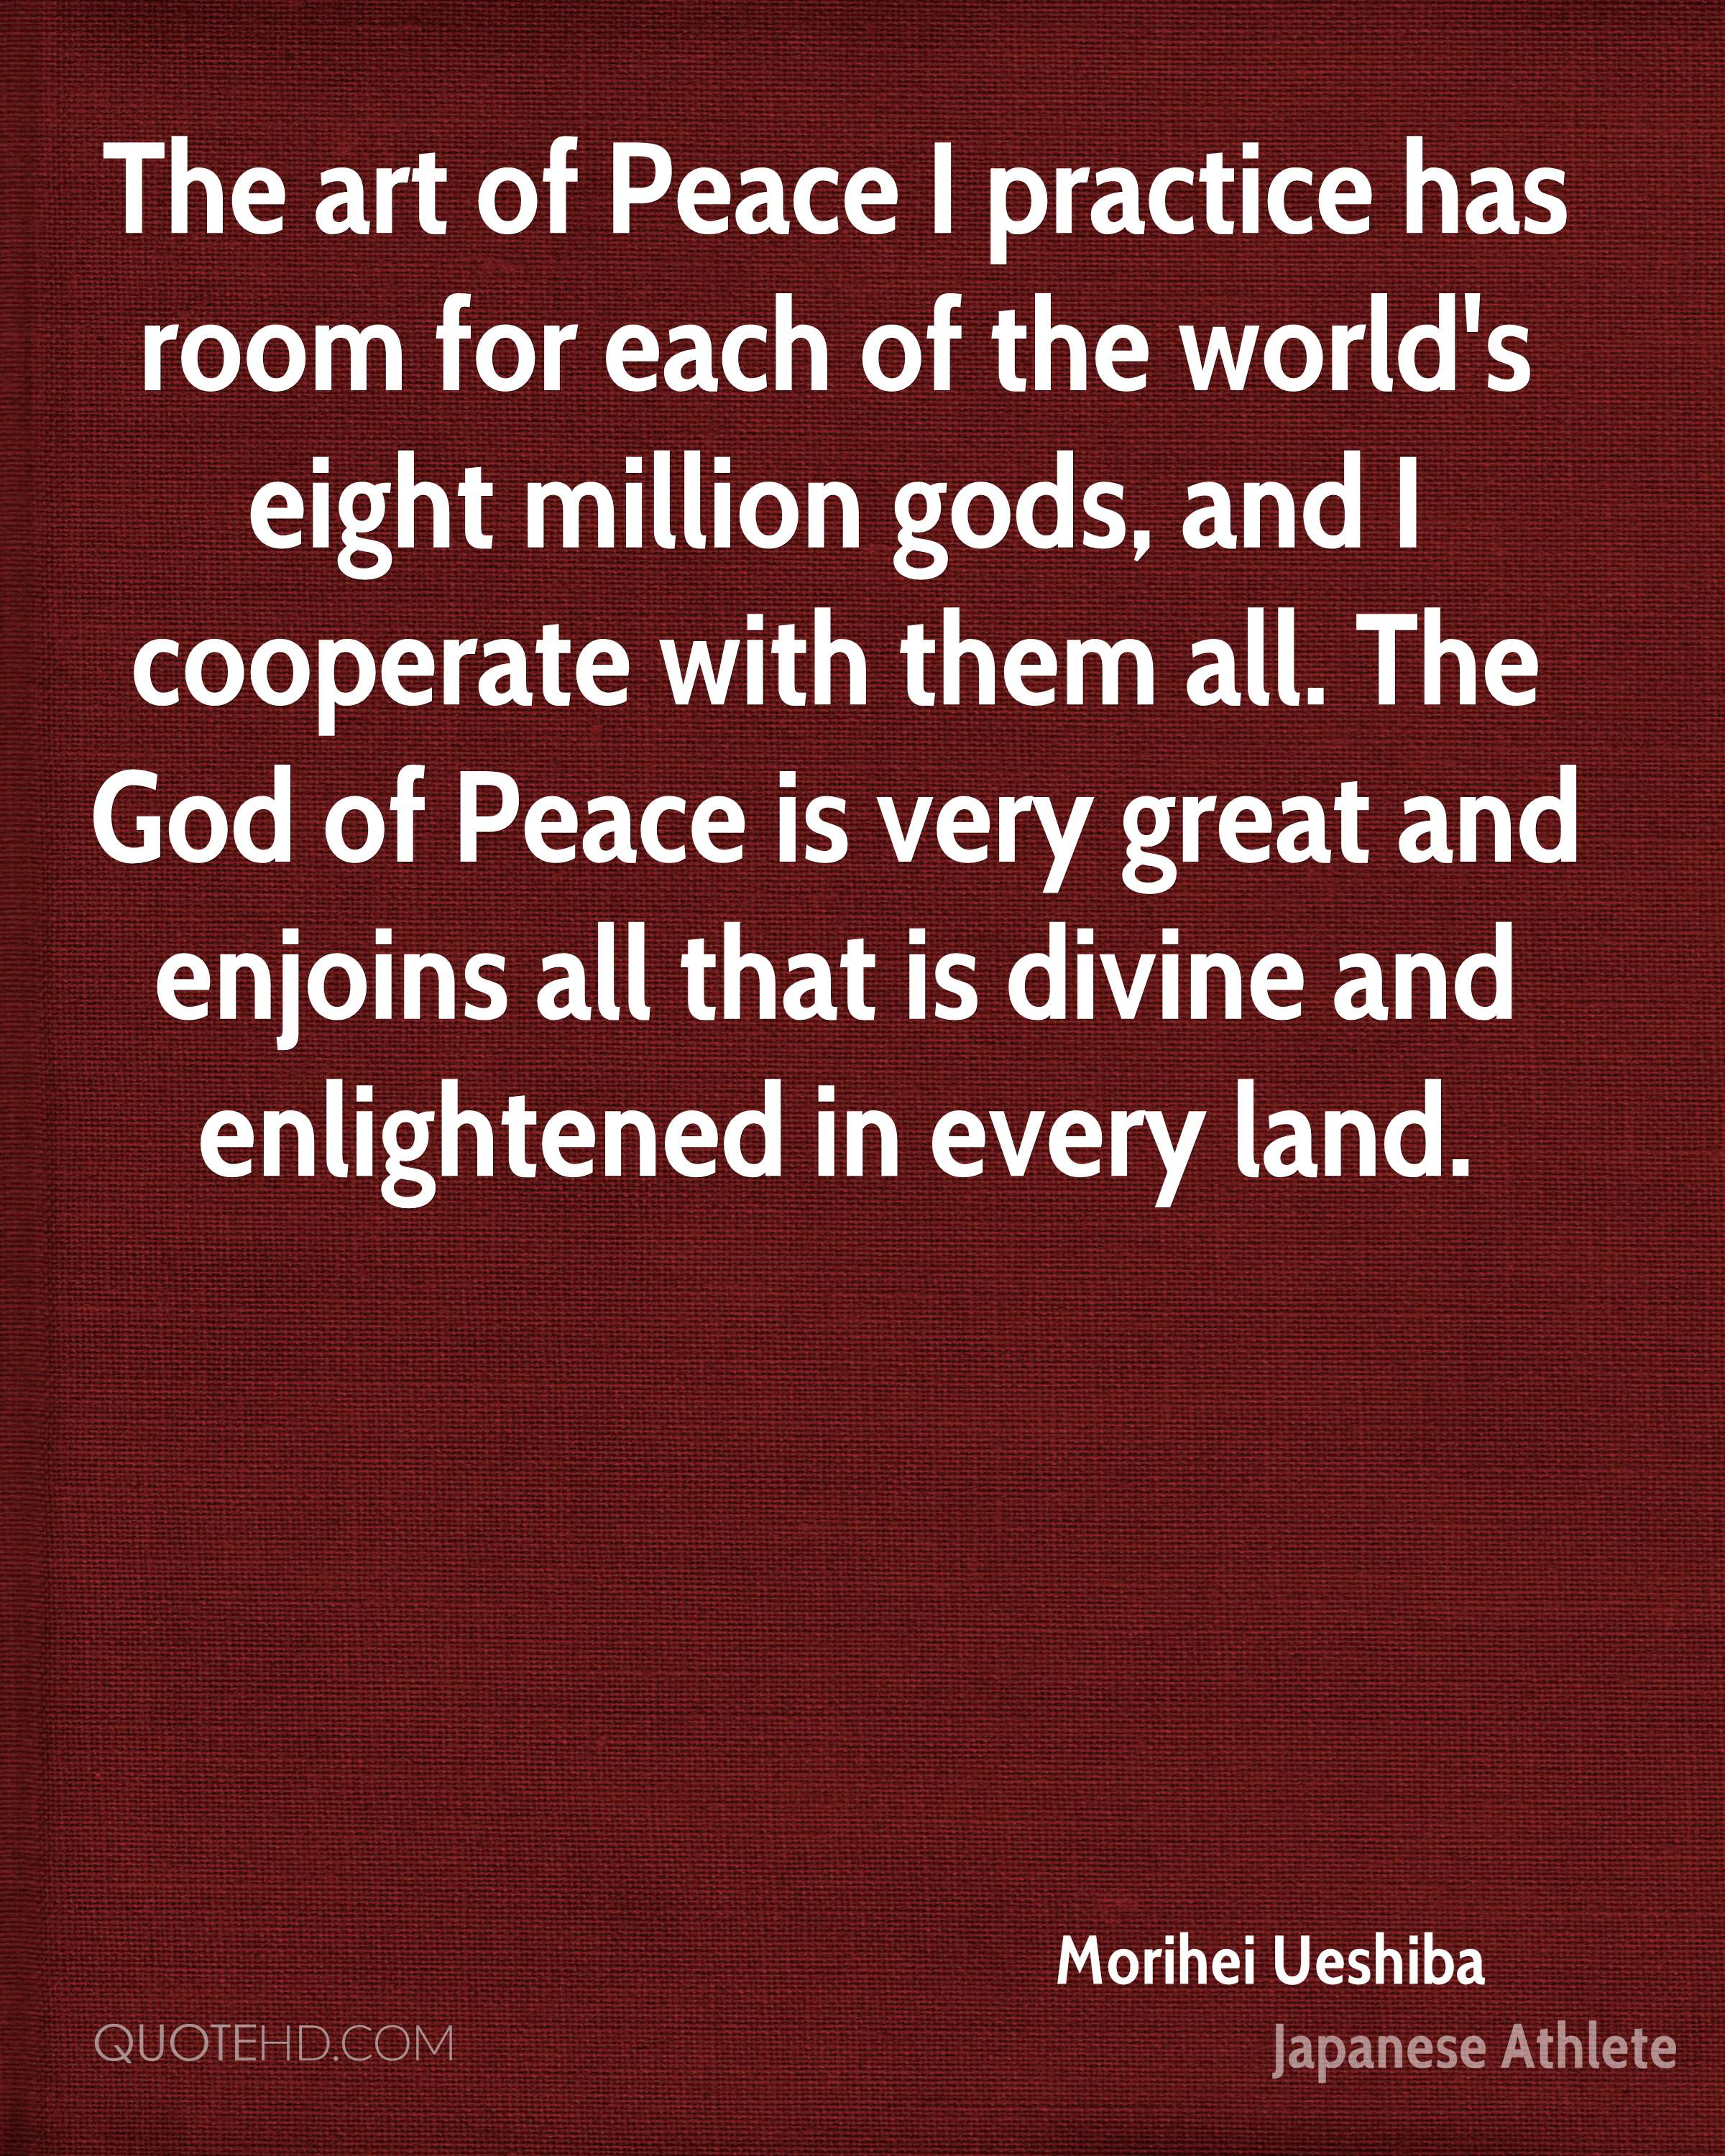 The art of Peace I practice has room for each of the world's eight million gods, and I cooperate with them all. The God of Peace is very great and enjoins all that is divine and enlightened in every land.